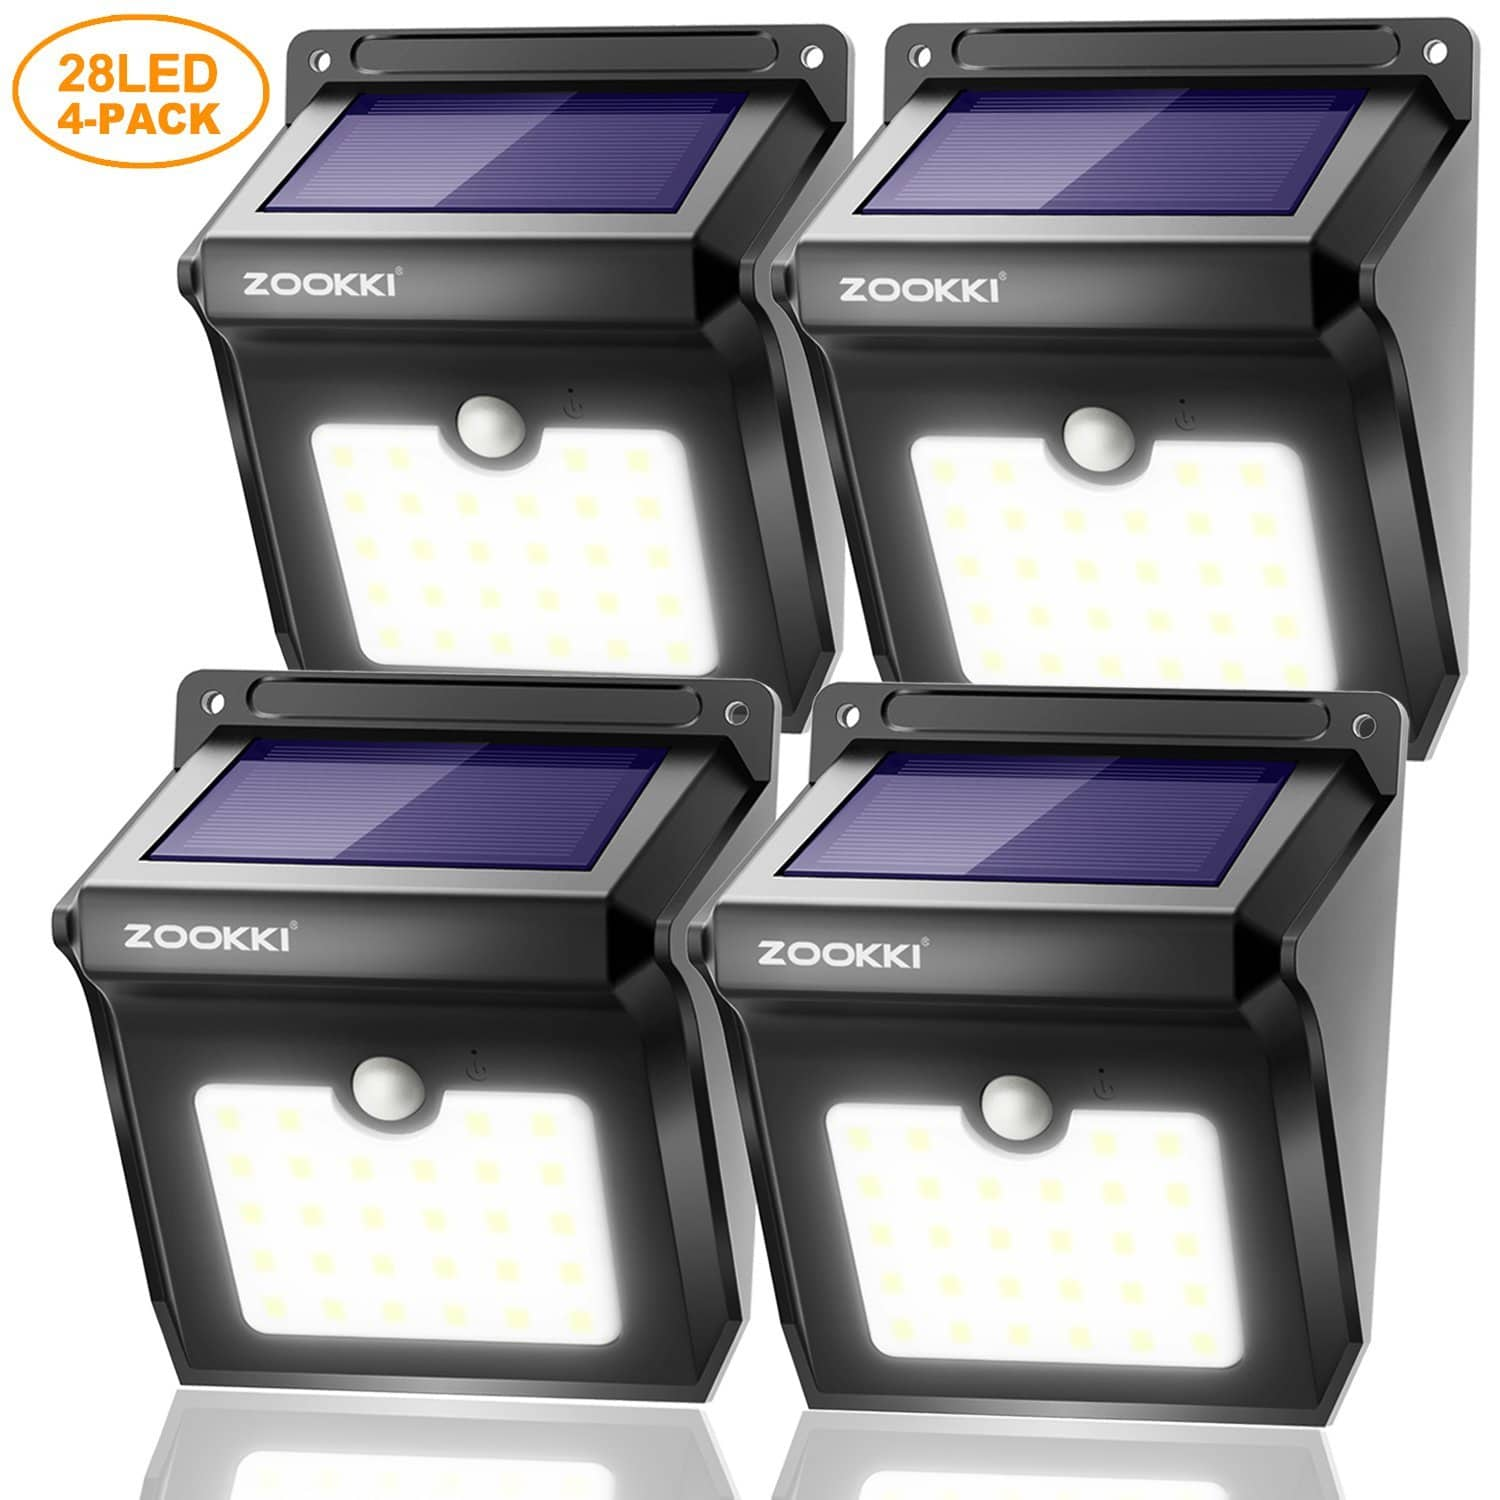 4 Pack Solar Motion Sensor 28 LEDs Waterproof Solar Lights for Outdoor $16.19 at Amazon